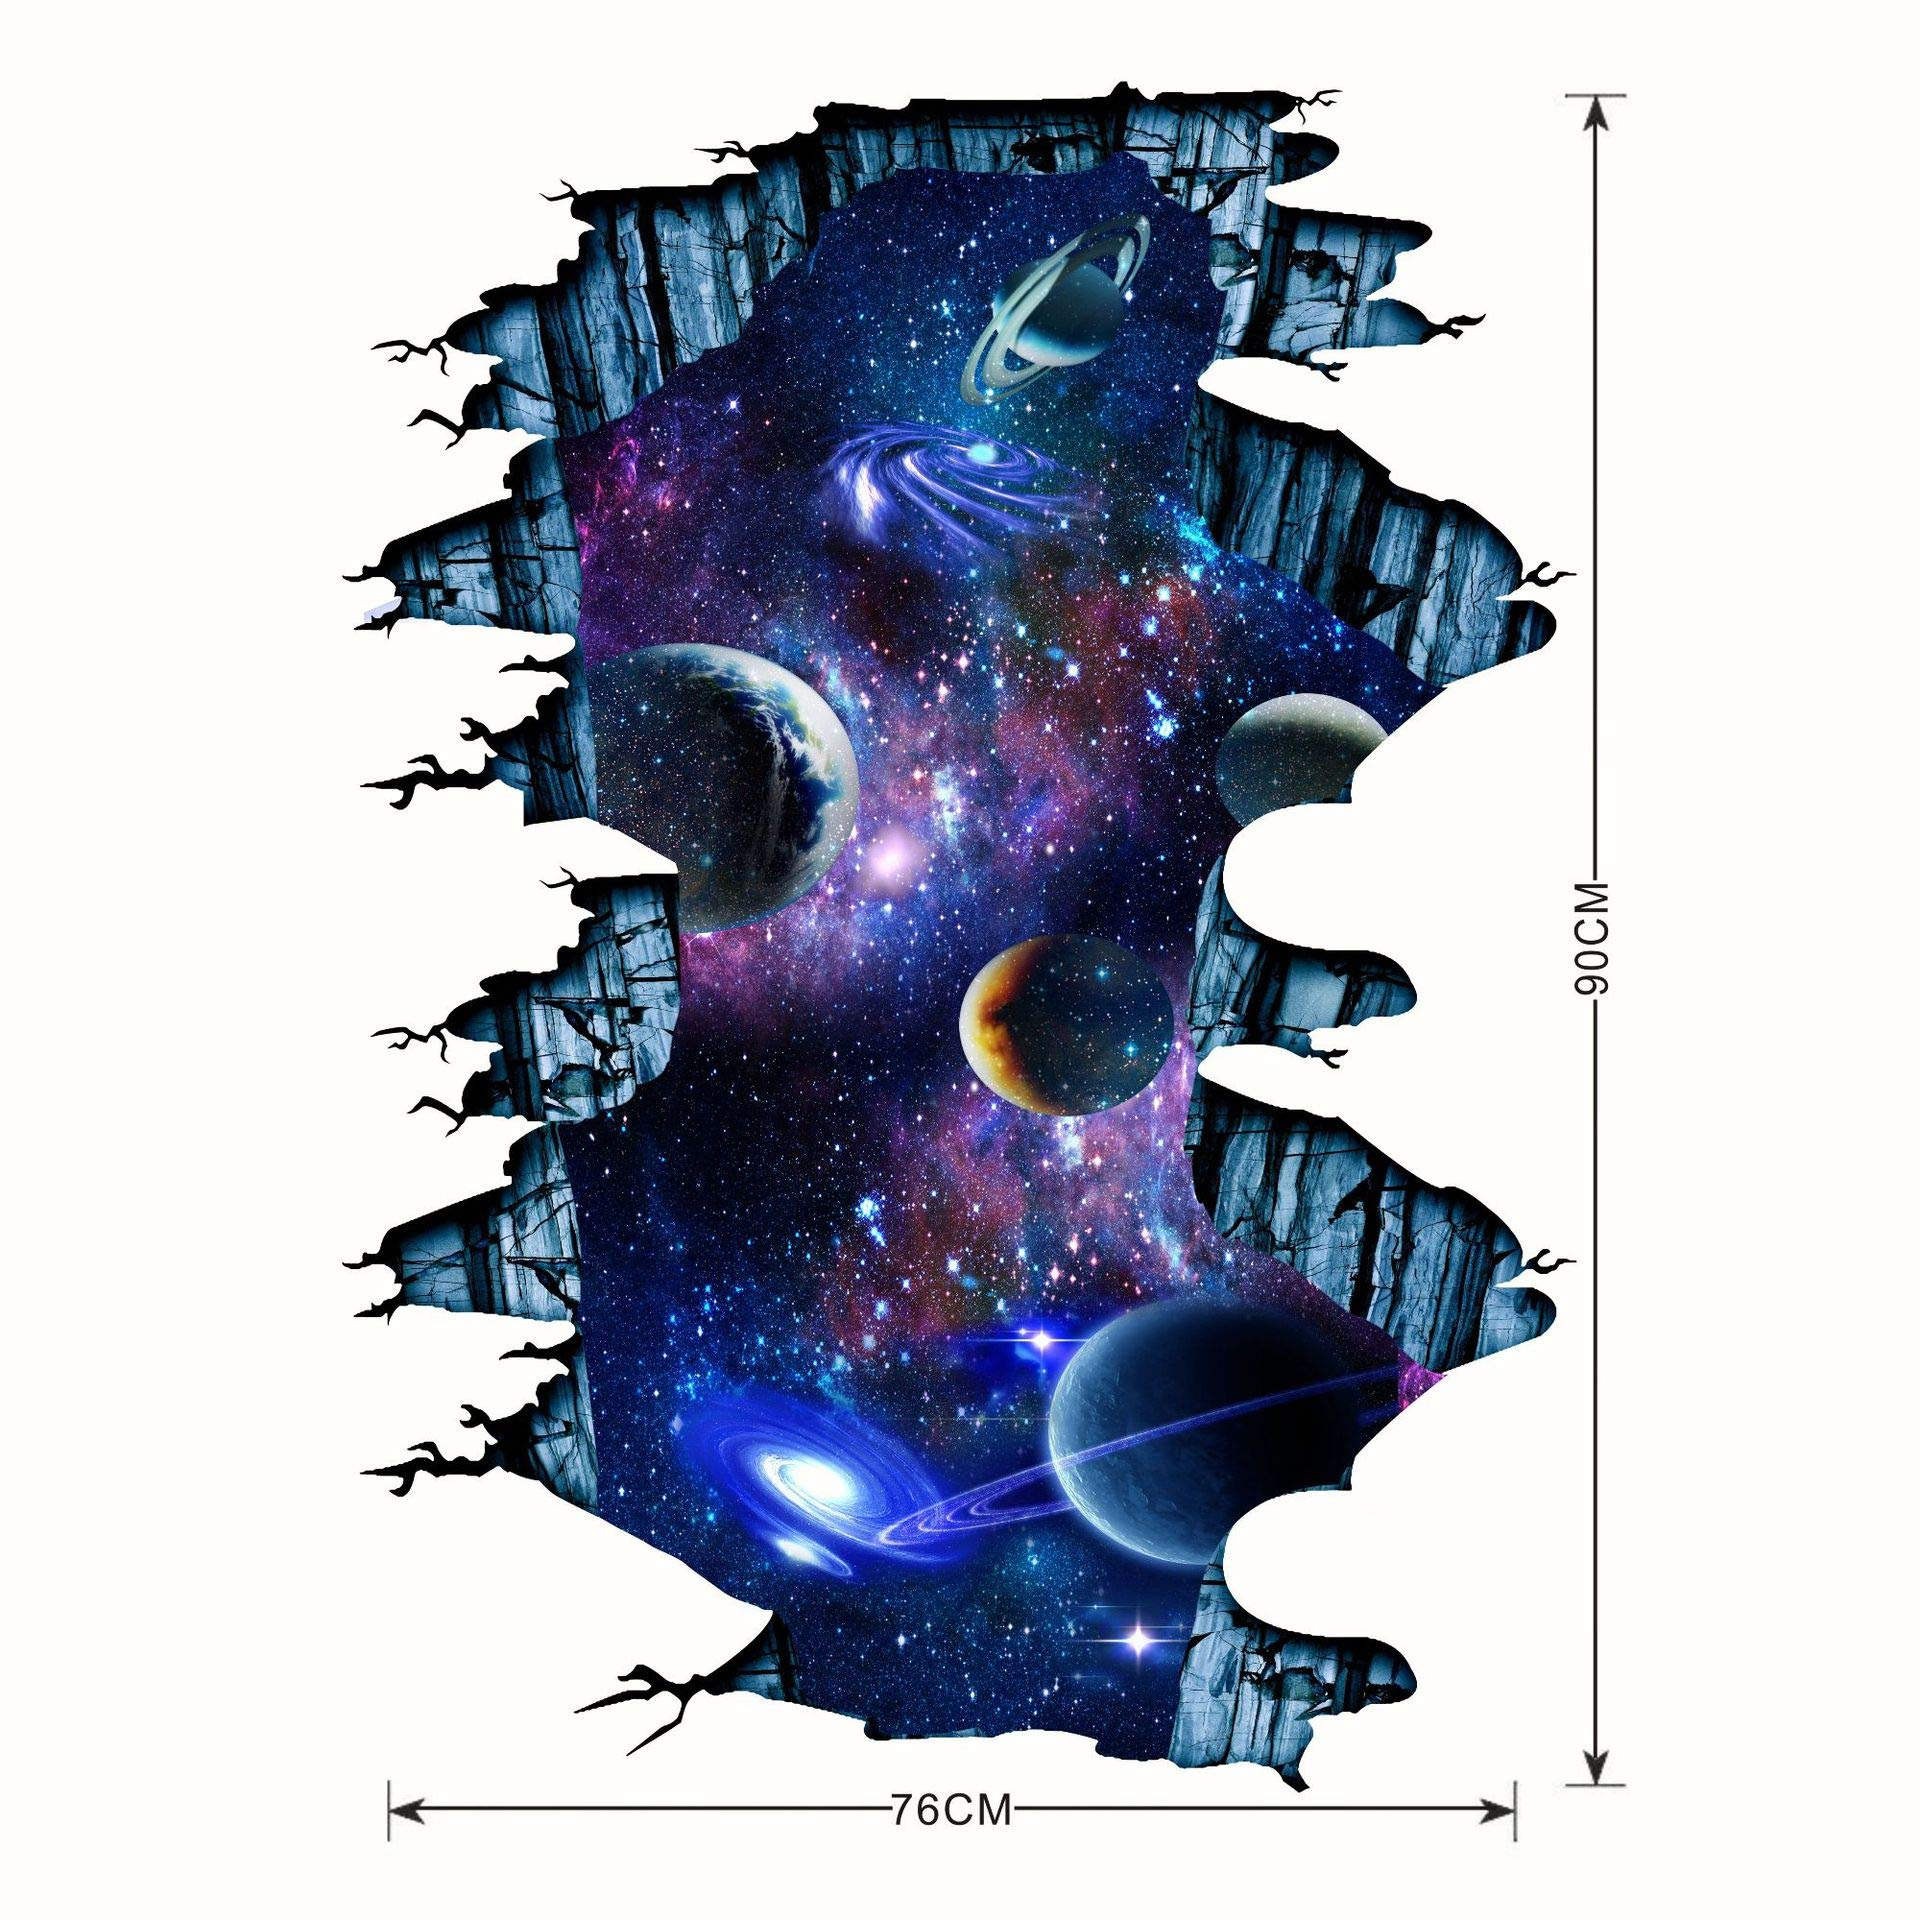 2 Set Blue Cosmic Galaxy Wall Decals Broken Wall View 3d Magic Milky Way Outer Space Planet Stickers Murals Wallpaper Decor For Home Floor Ceiling Living Room Kids Room Buy Online In